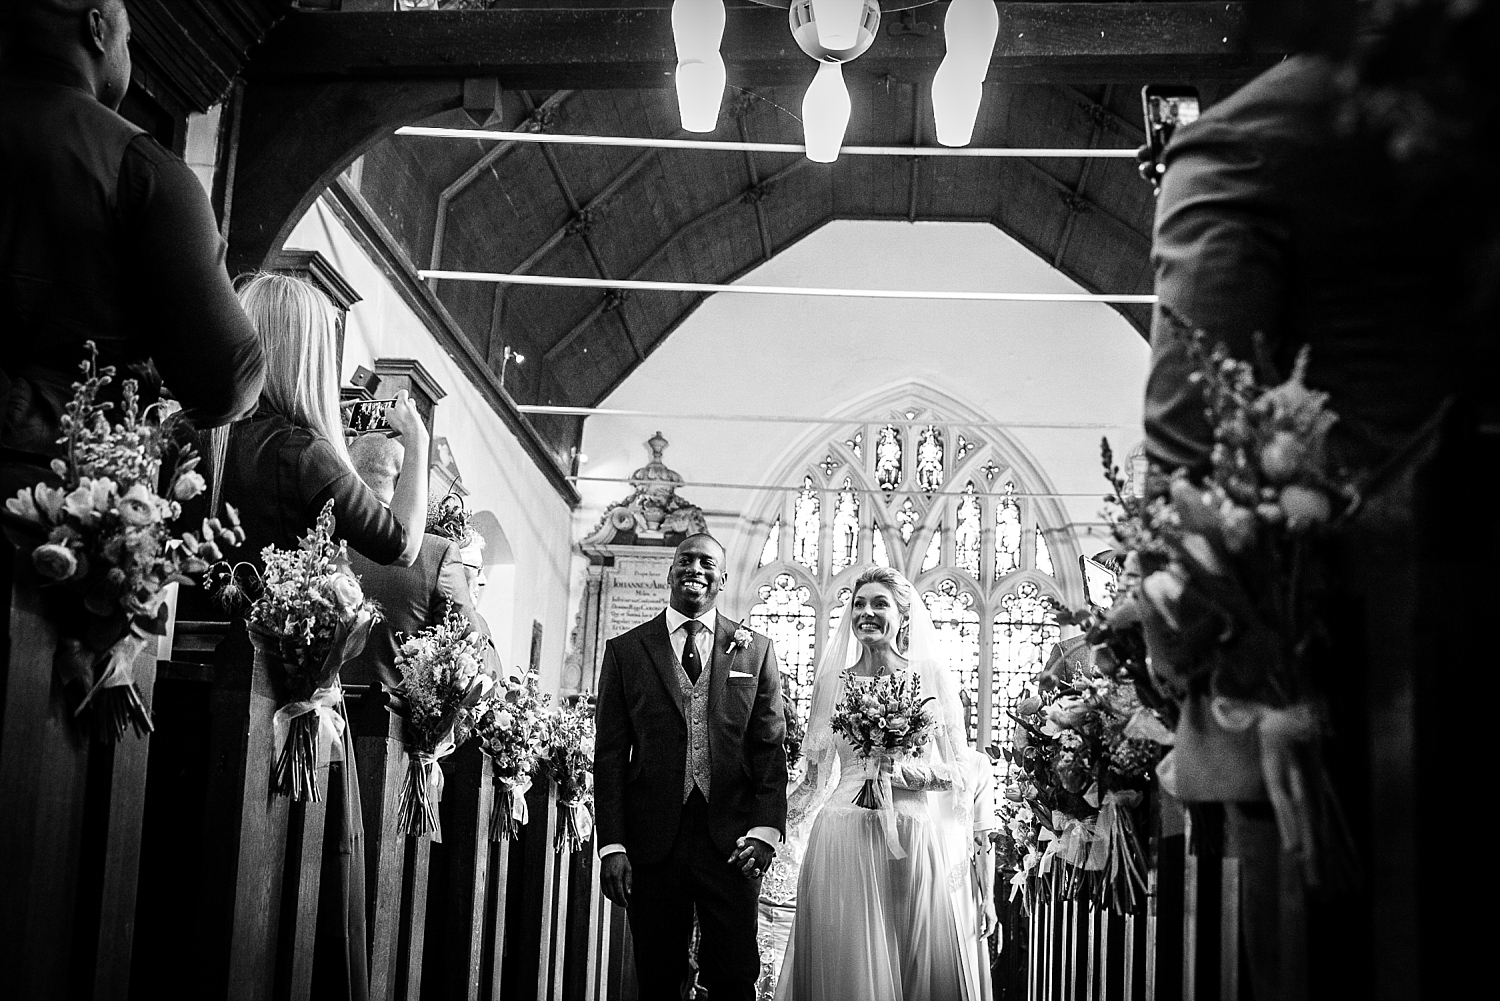 Gaynes Park Wedding Photographer - Anesta Broad Photography